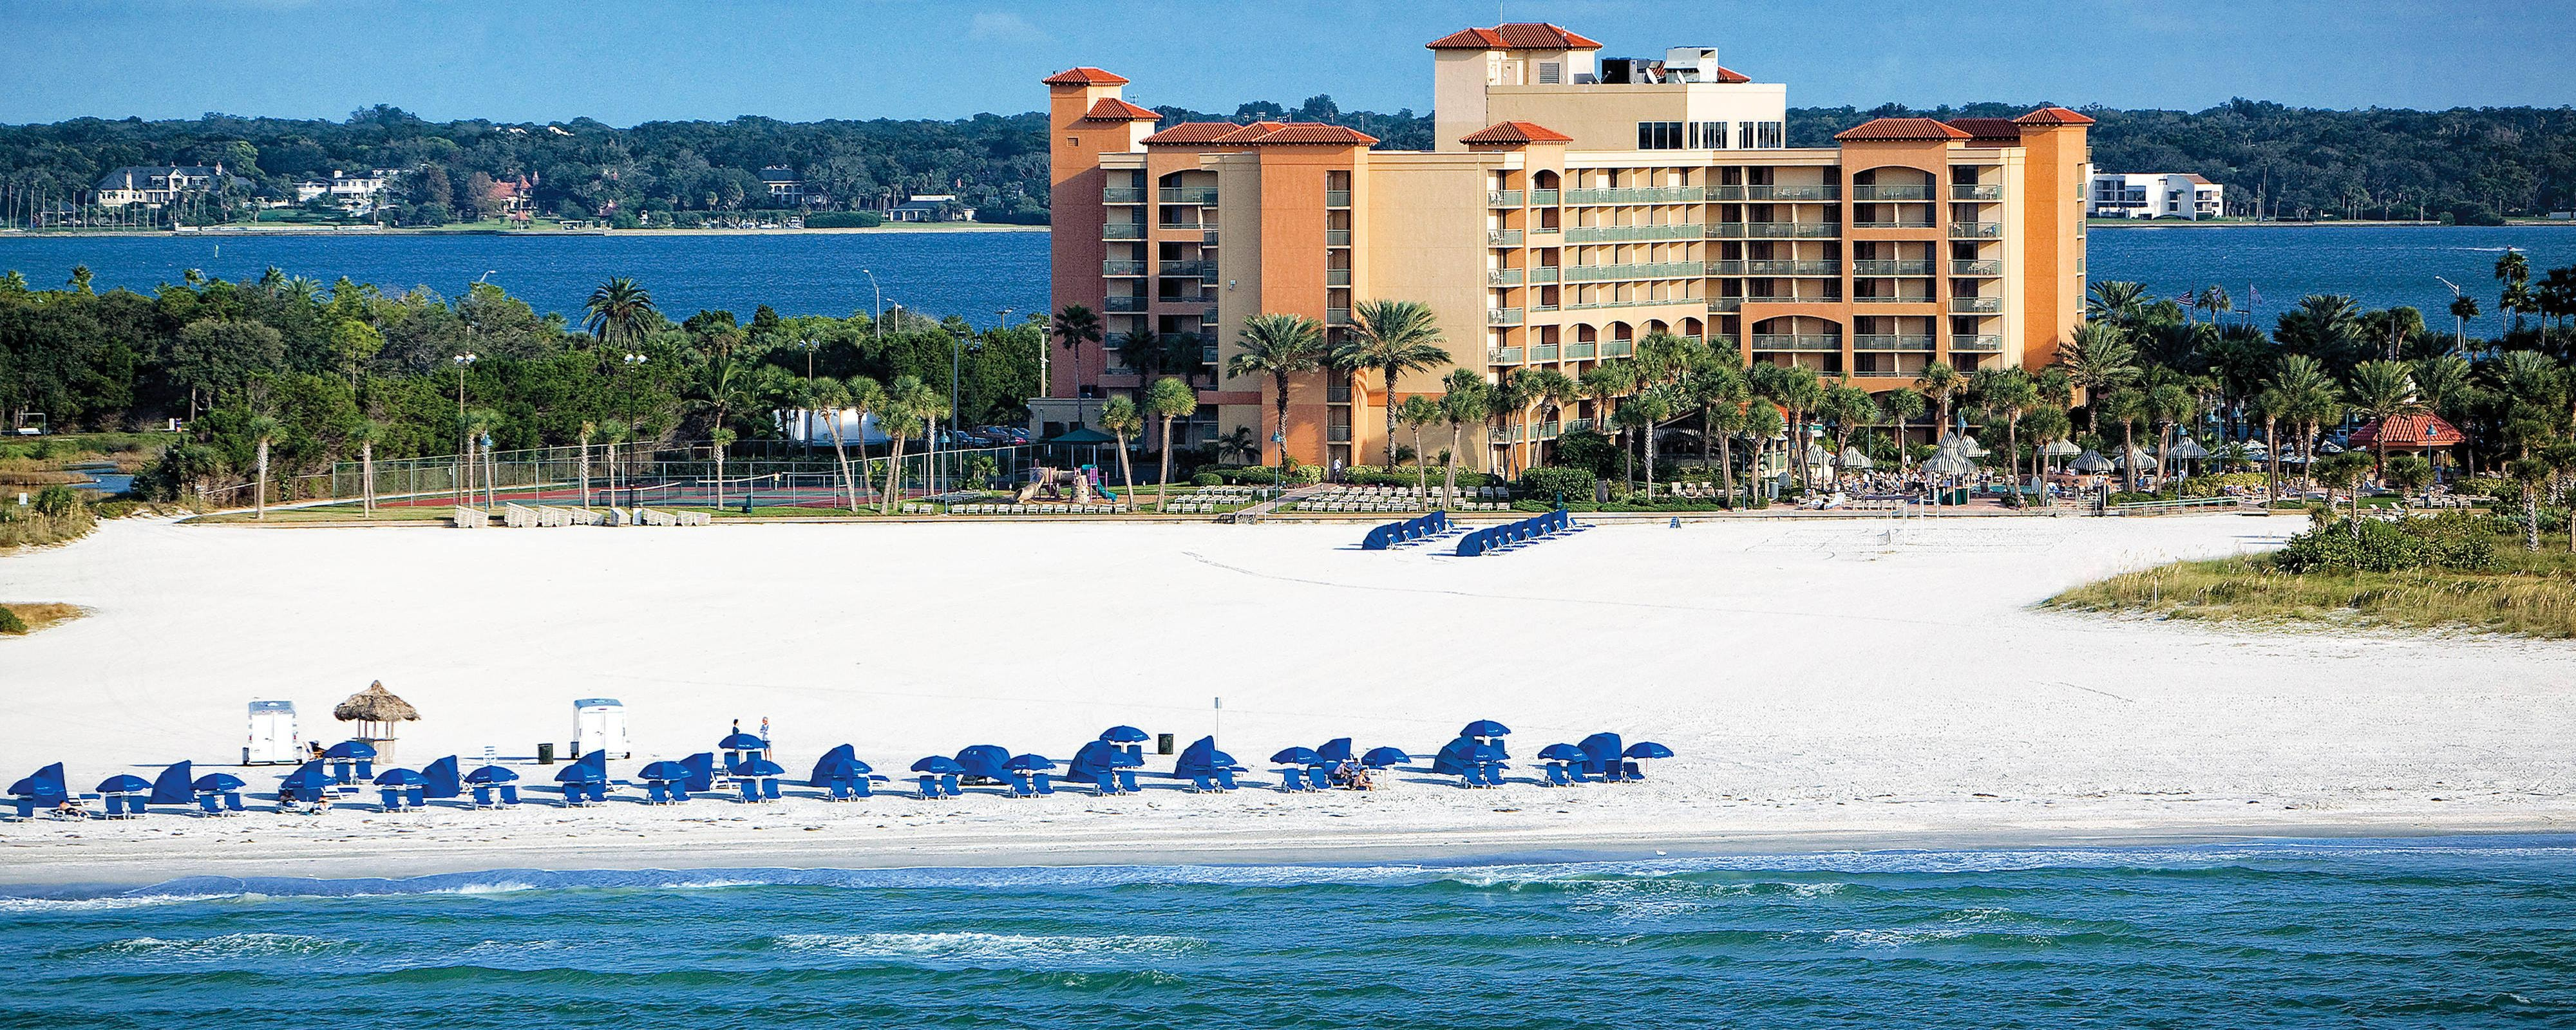 Oceanfront Hotel in Clearwater Beach Florida  Sheraton